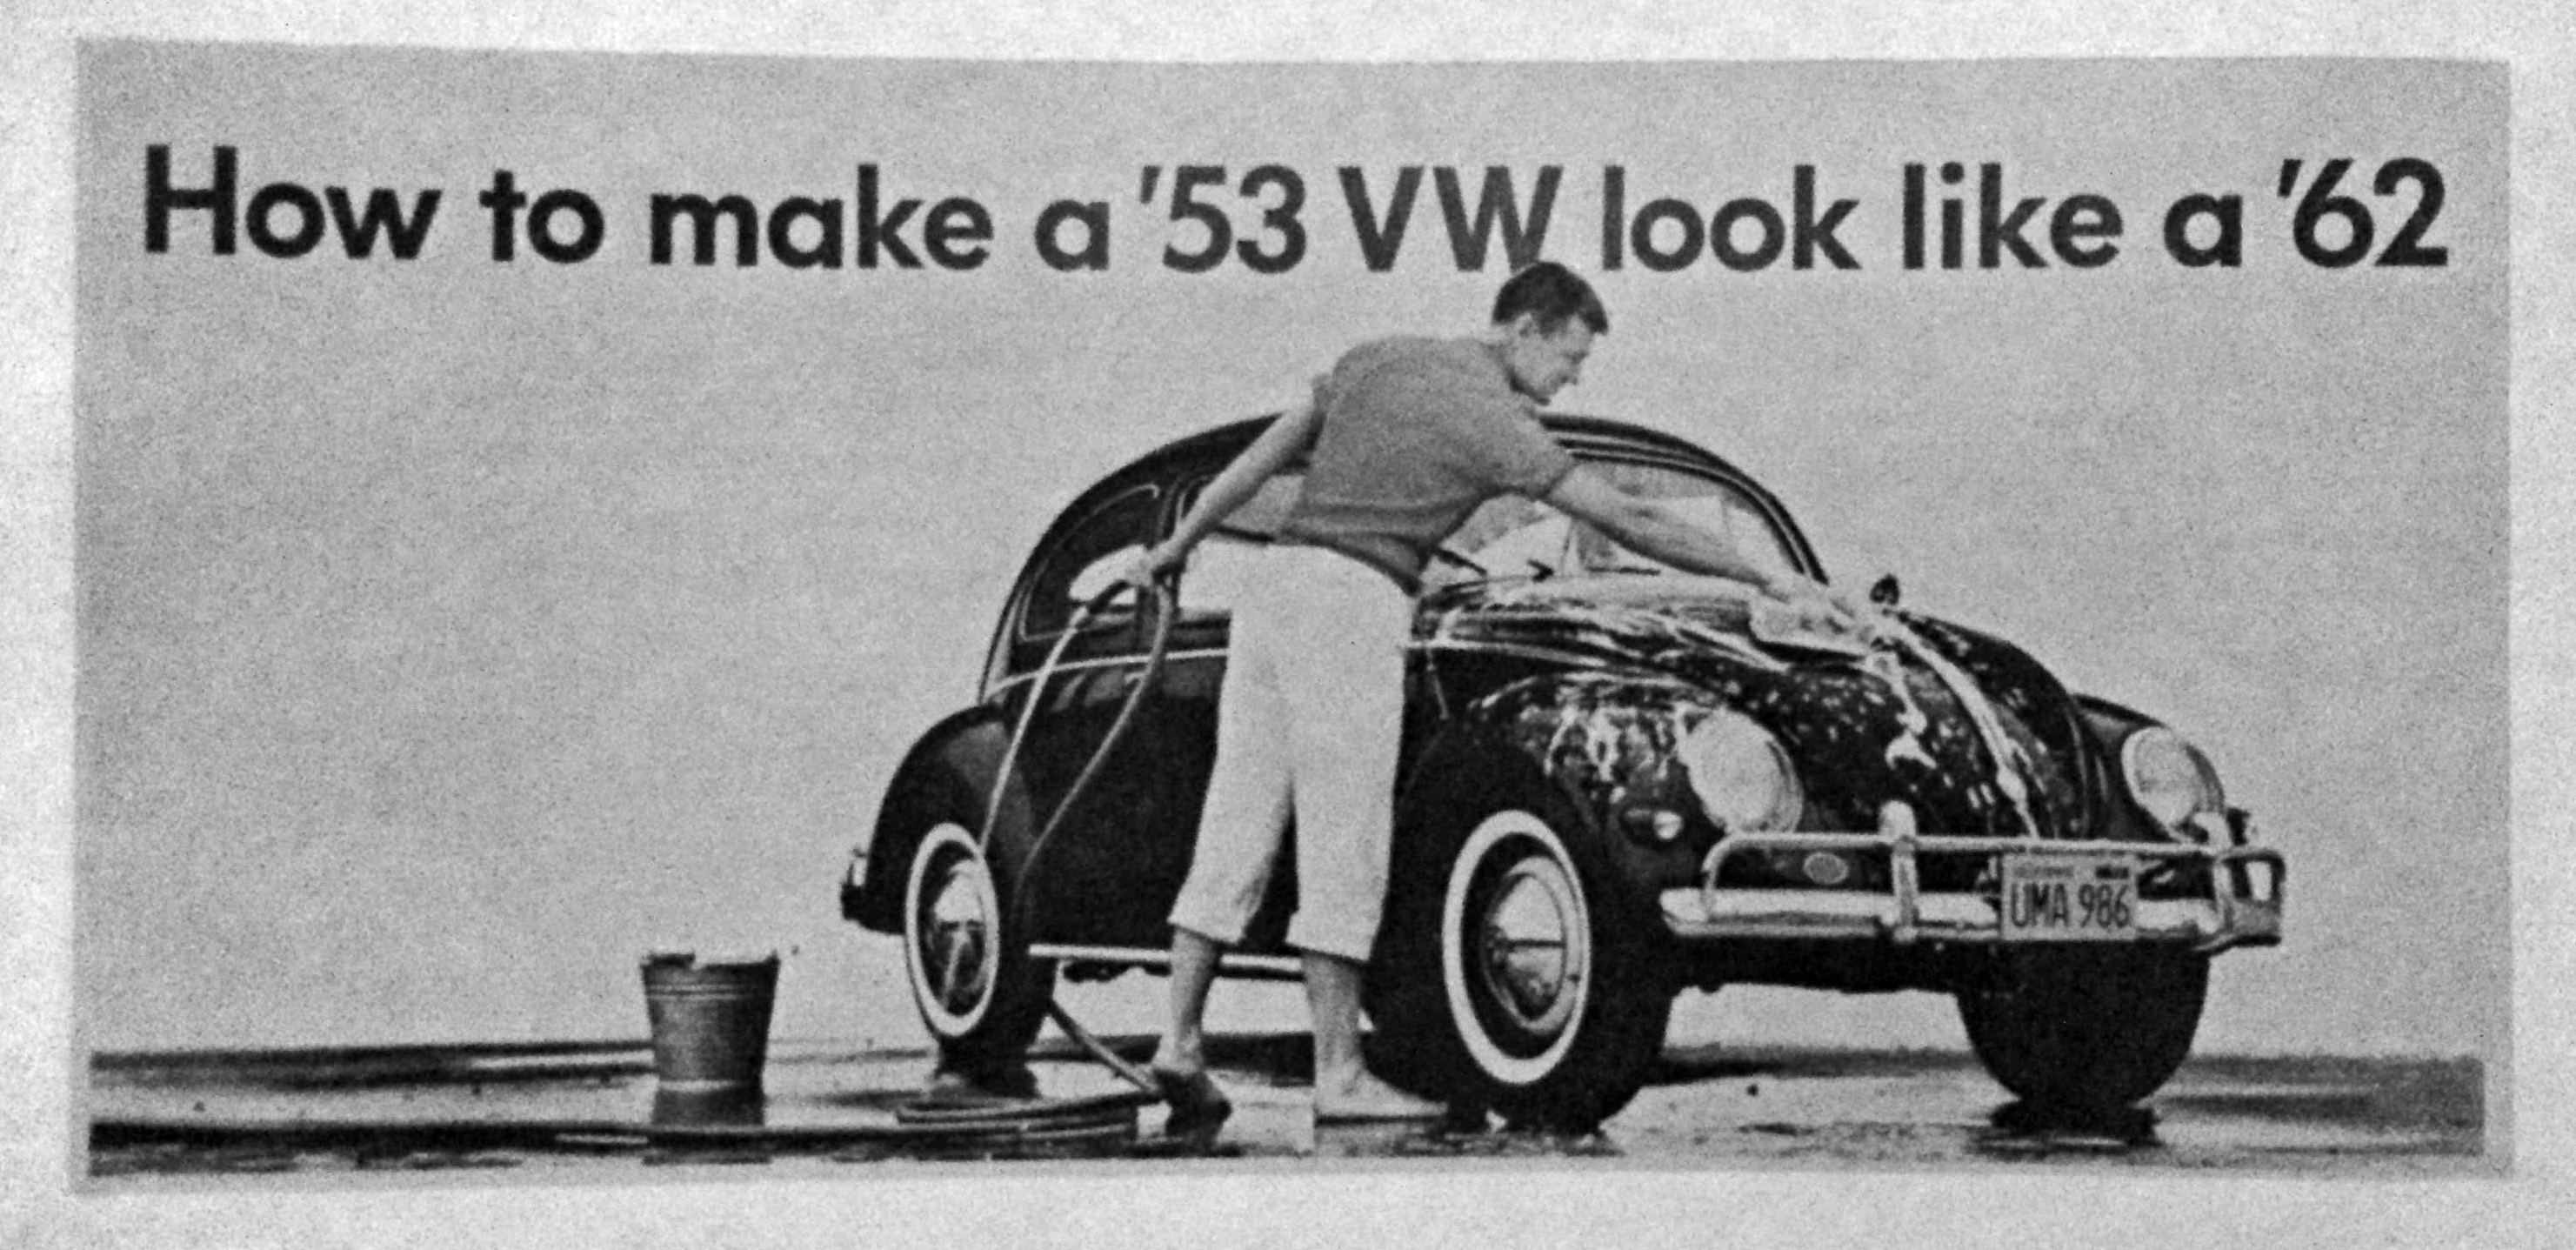 ... Los Angeles VW Dealership. The Art Director And Designer Of The Ad Was  Stan Jones. The Picture Was Taken By Bernard Gardner, And The Copywriter  Was ...